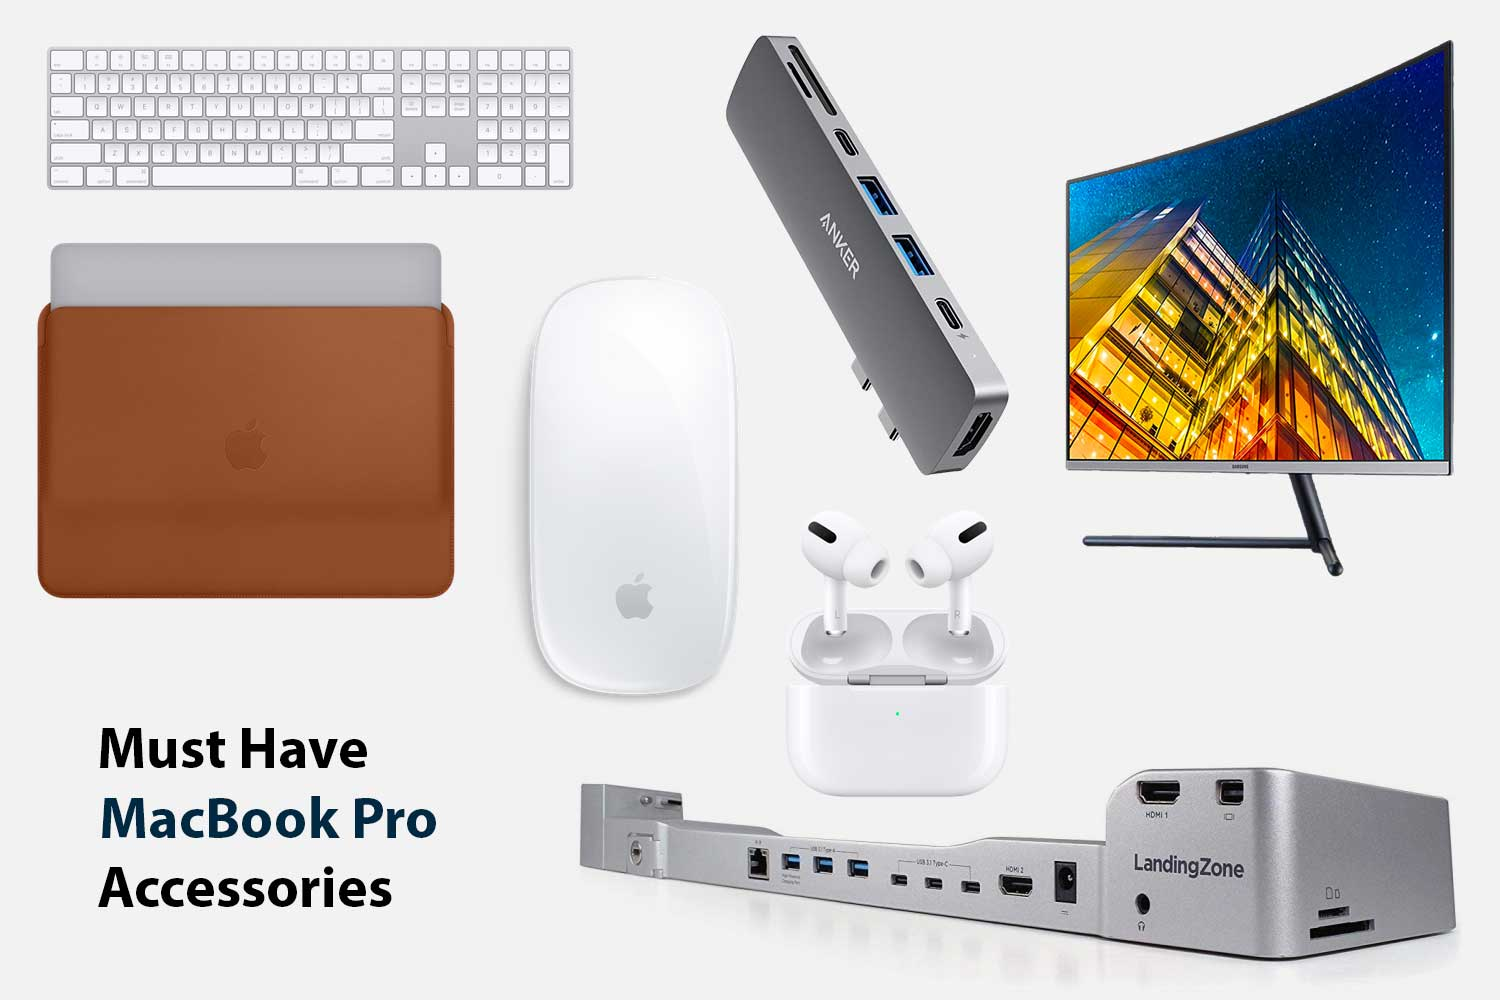 Best MacBook Pro Accessories 2021: What all do you really need?